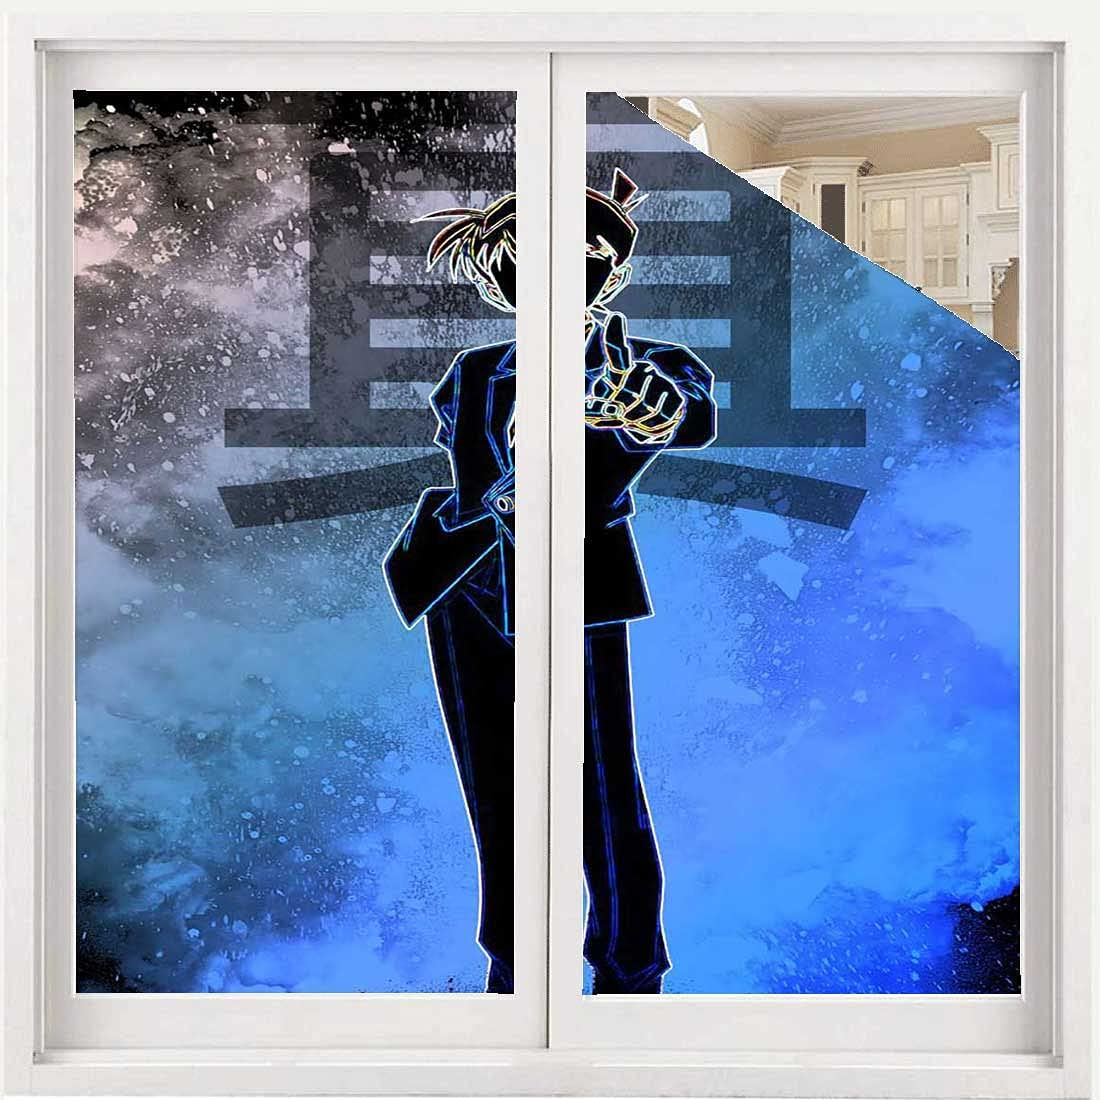 Complete Free Shipping Soul of The Detective Static Cling 3D Film Window Ranking TOP8 Decorative De